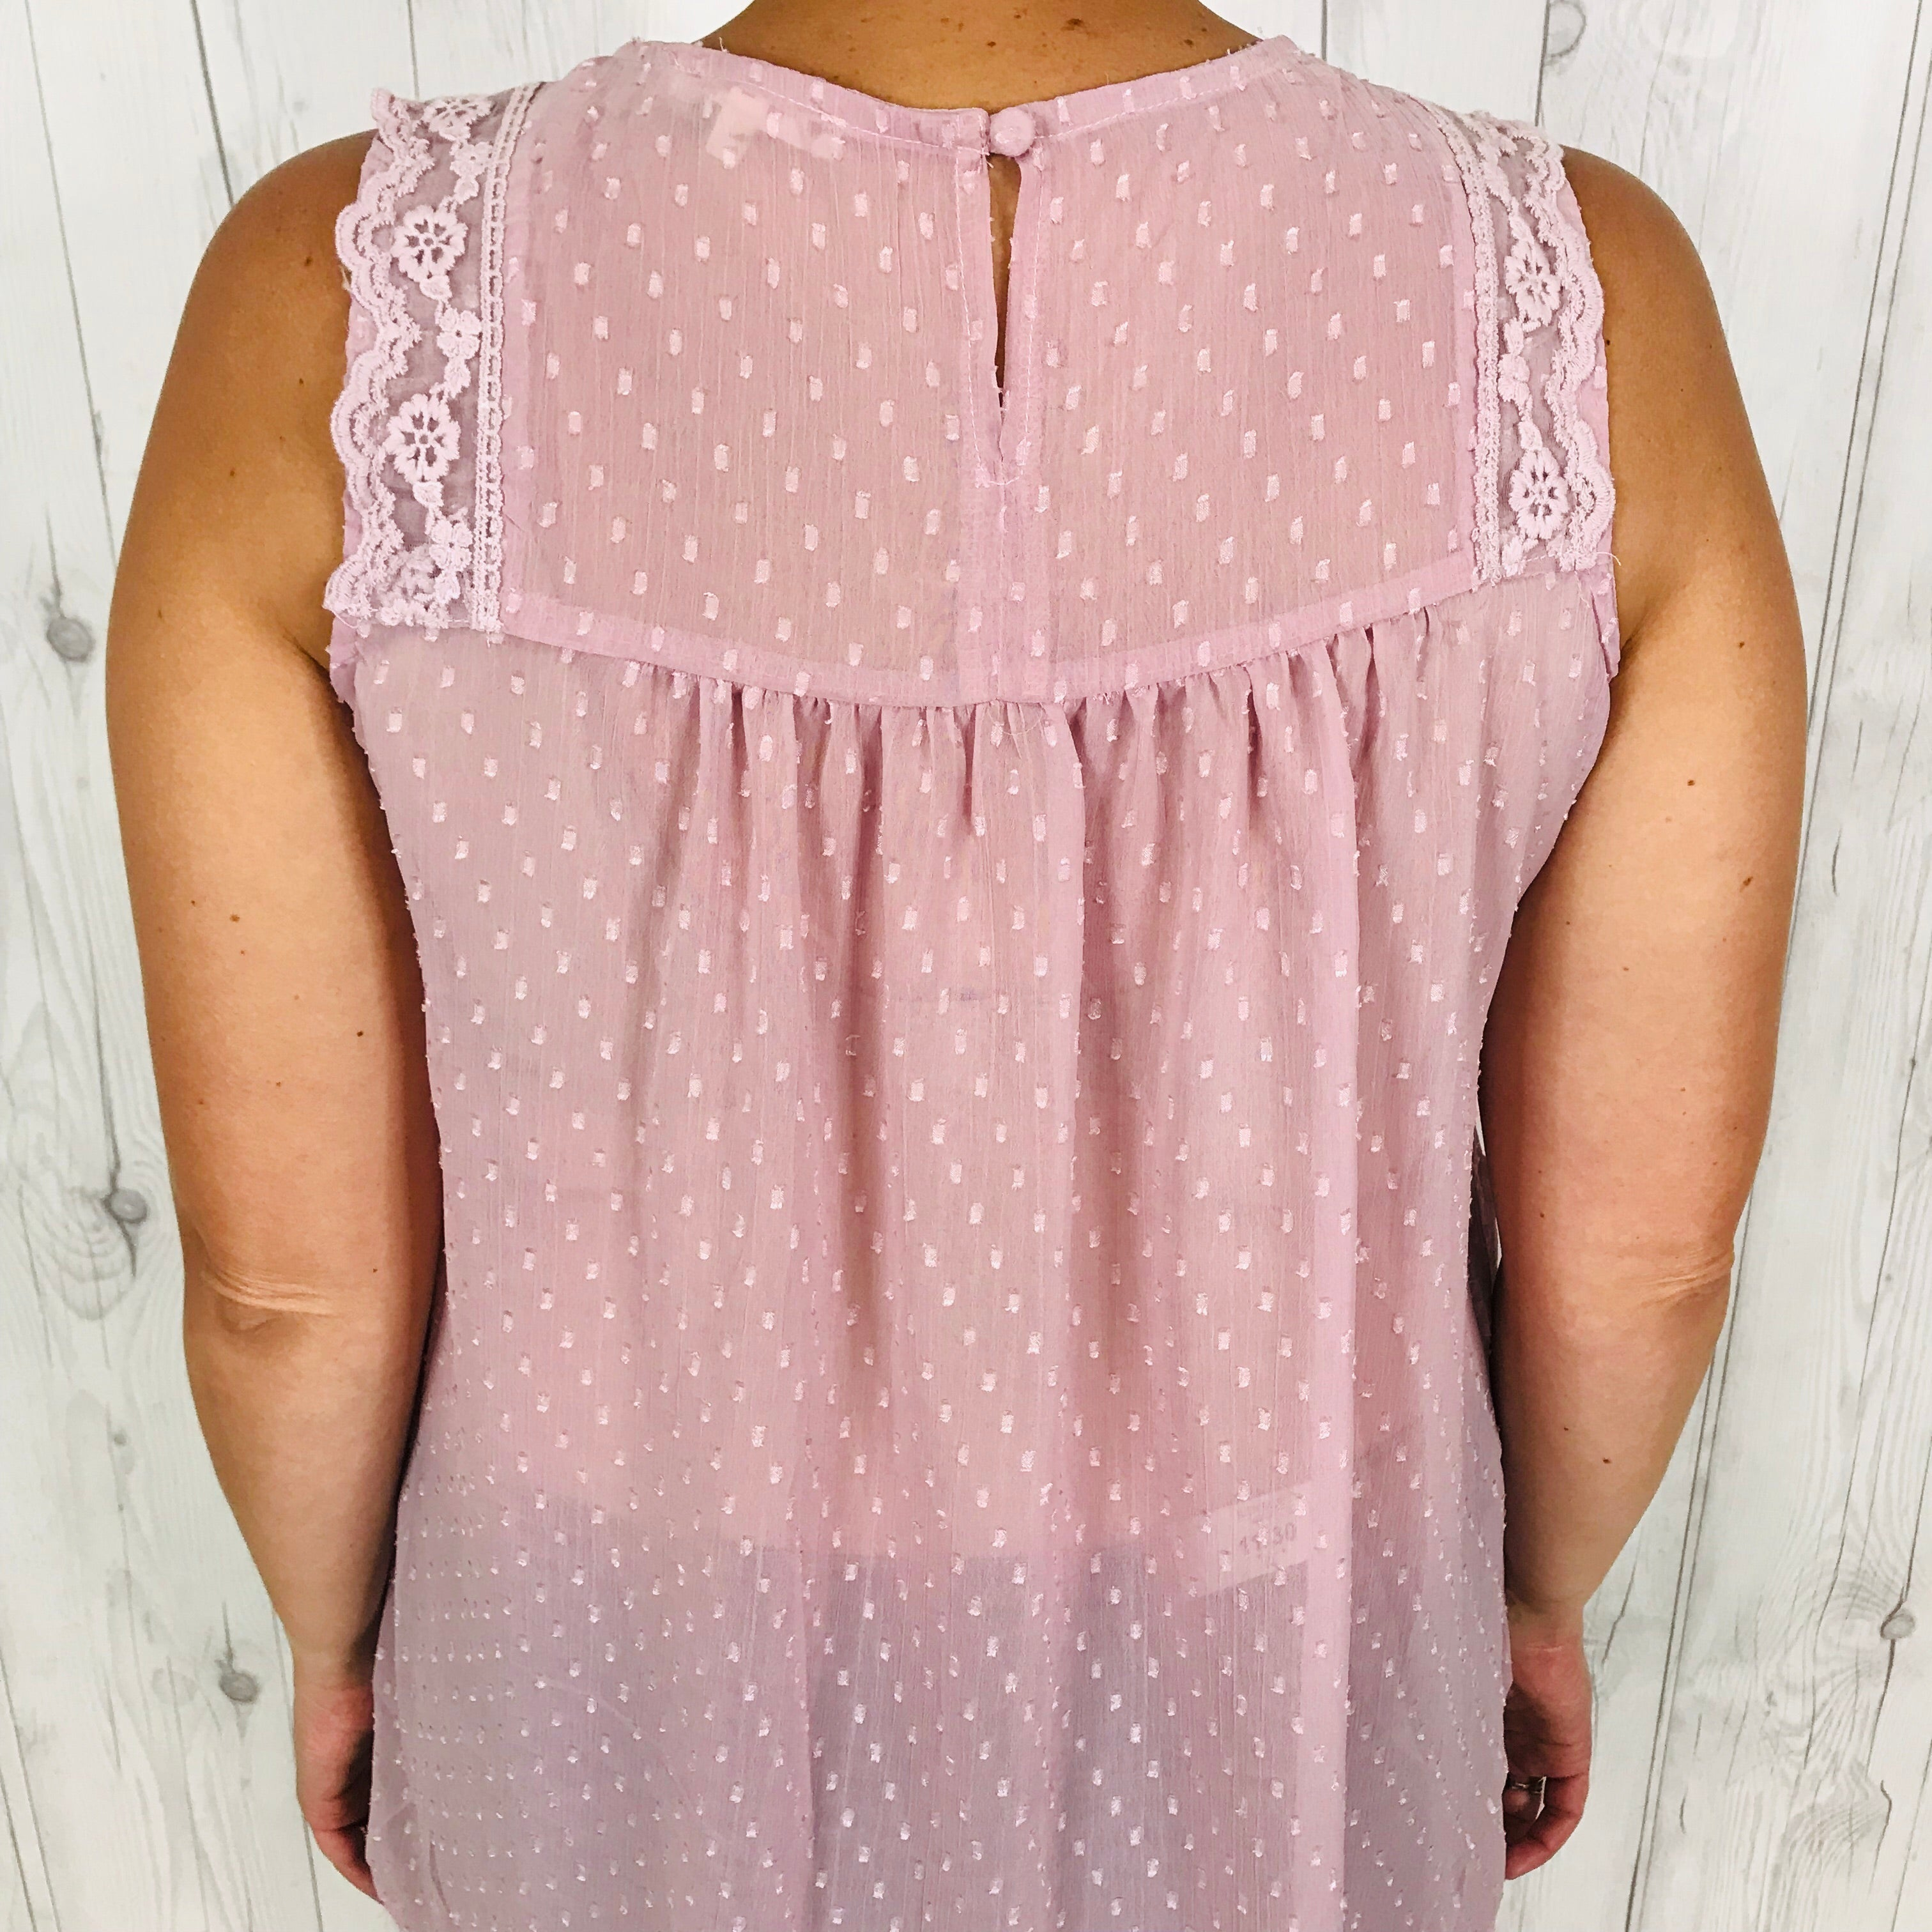 Easel Dusty Lavender Sleeveless Top with Embroidered Shoulder Detail